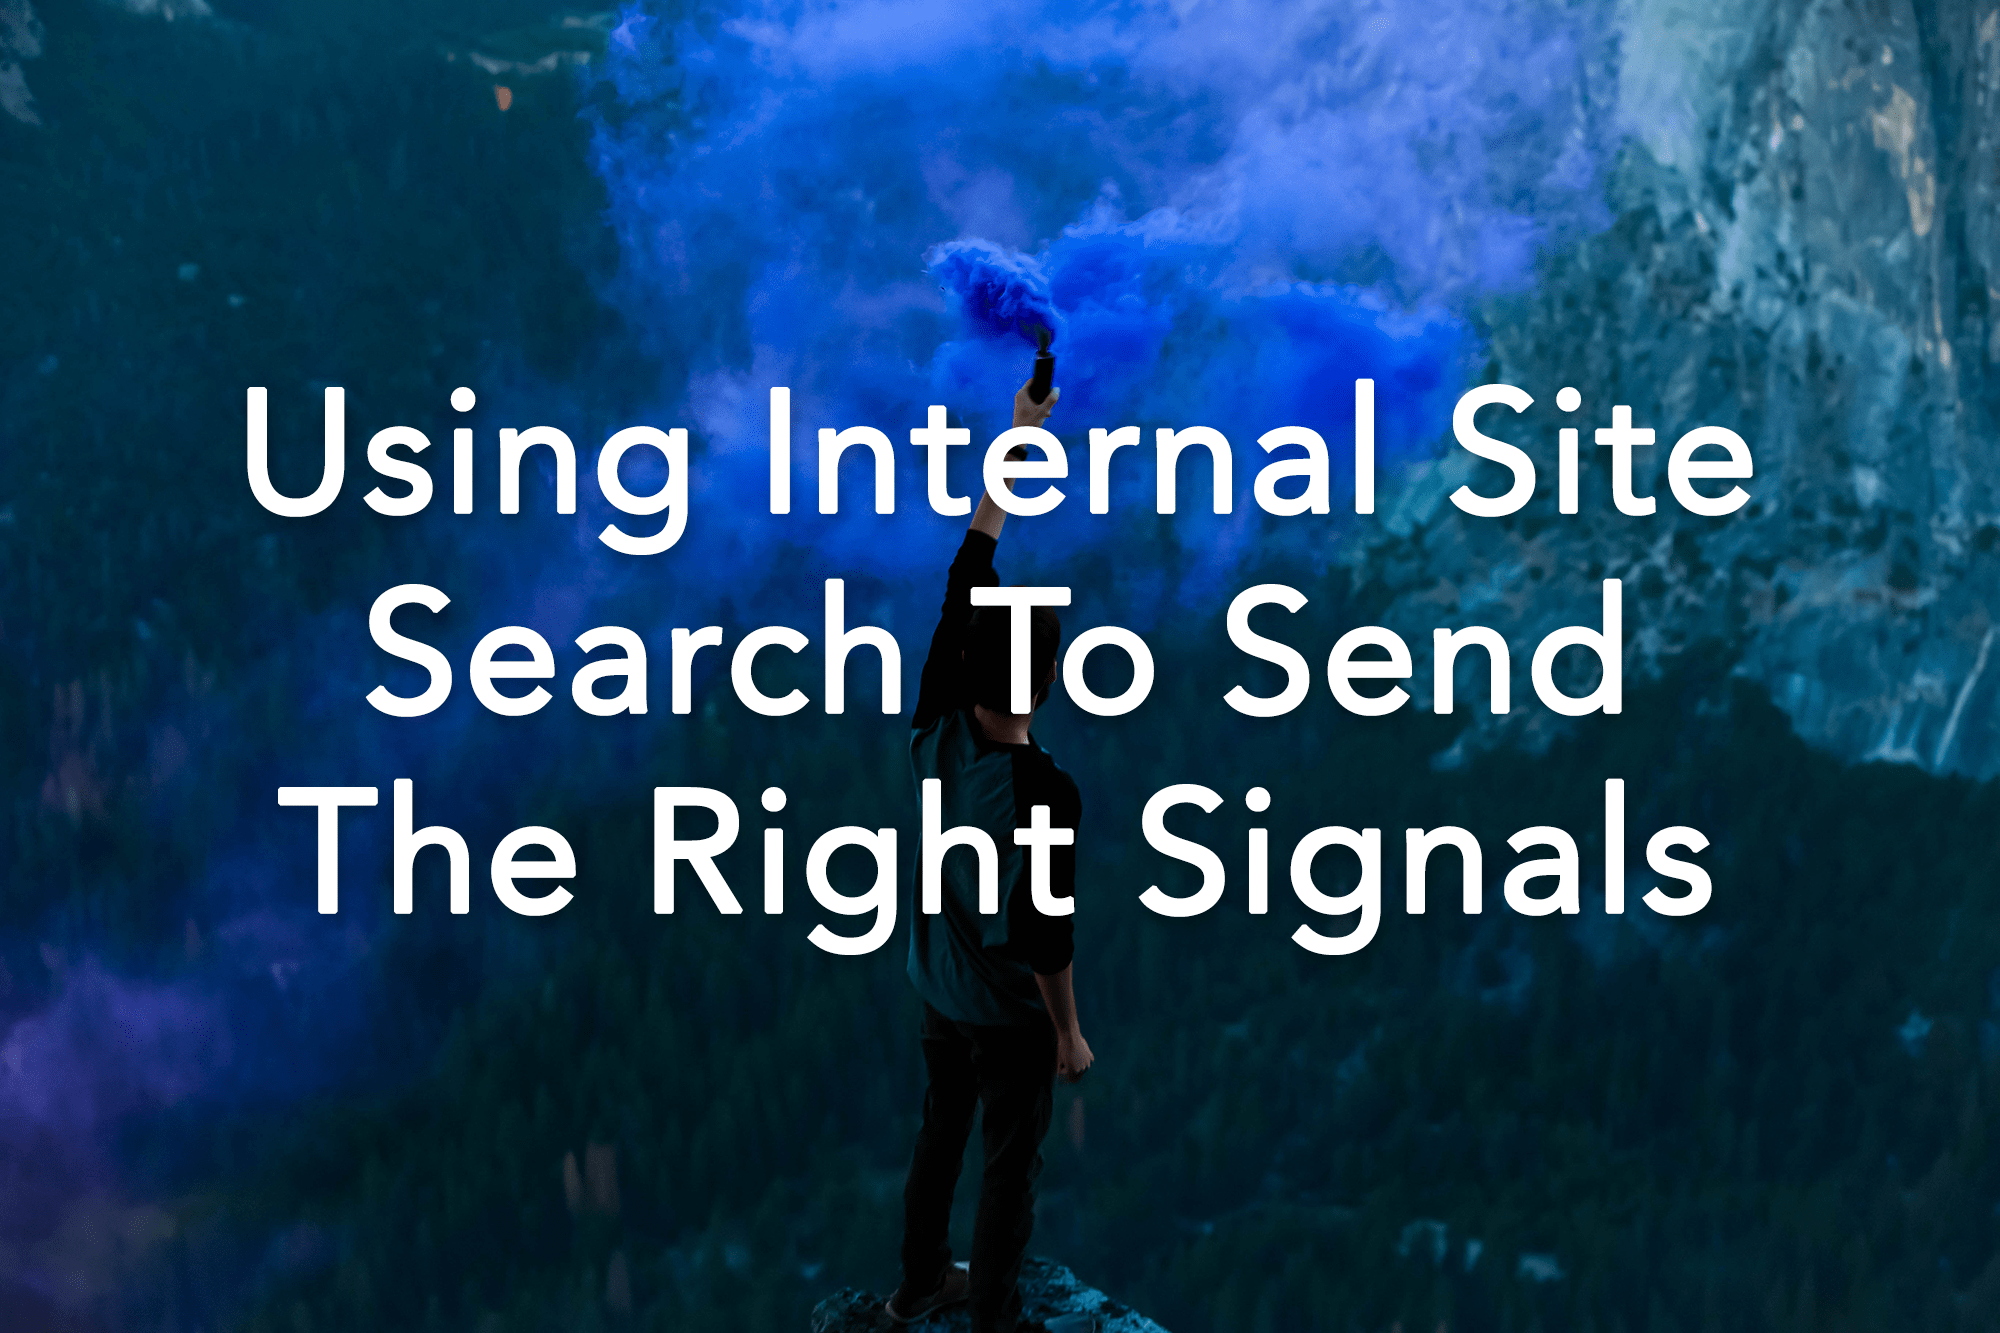 Using Internal Site Search to Send the Right Signals